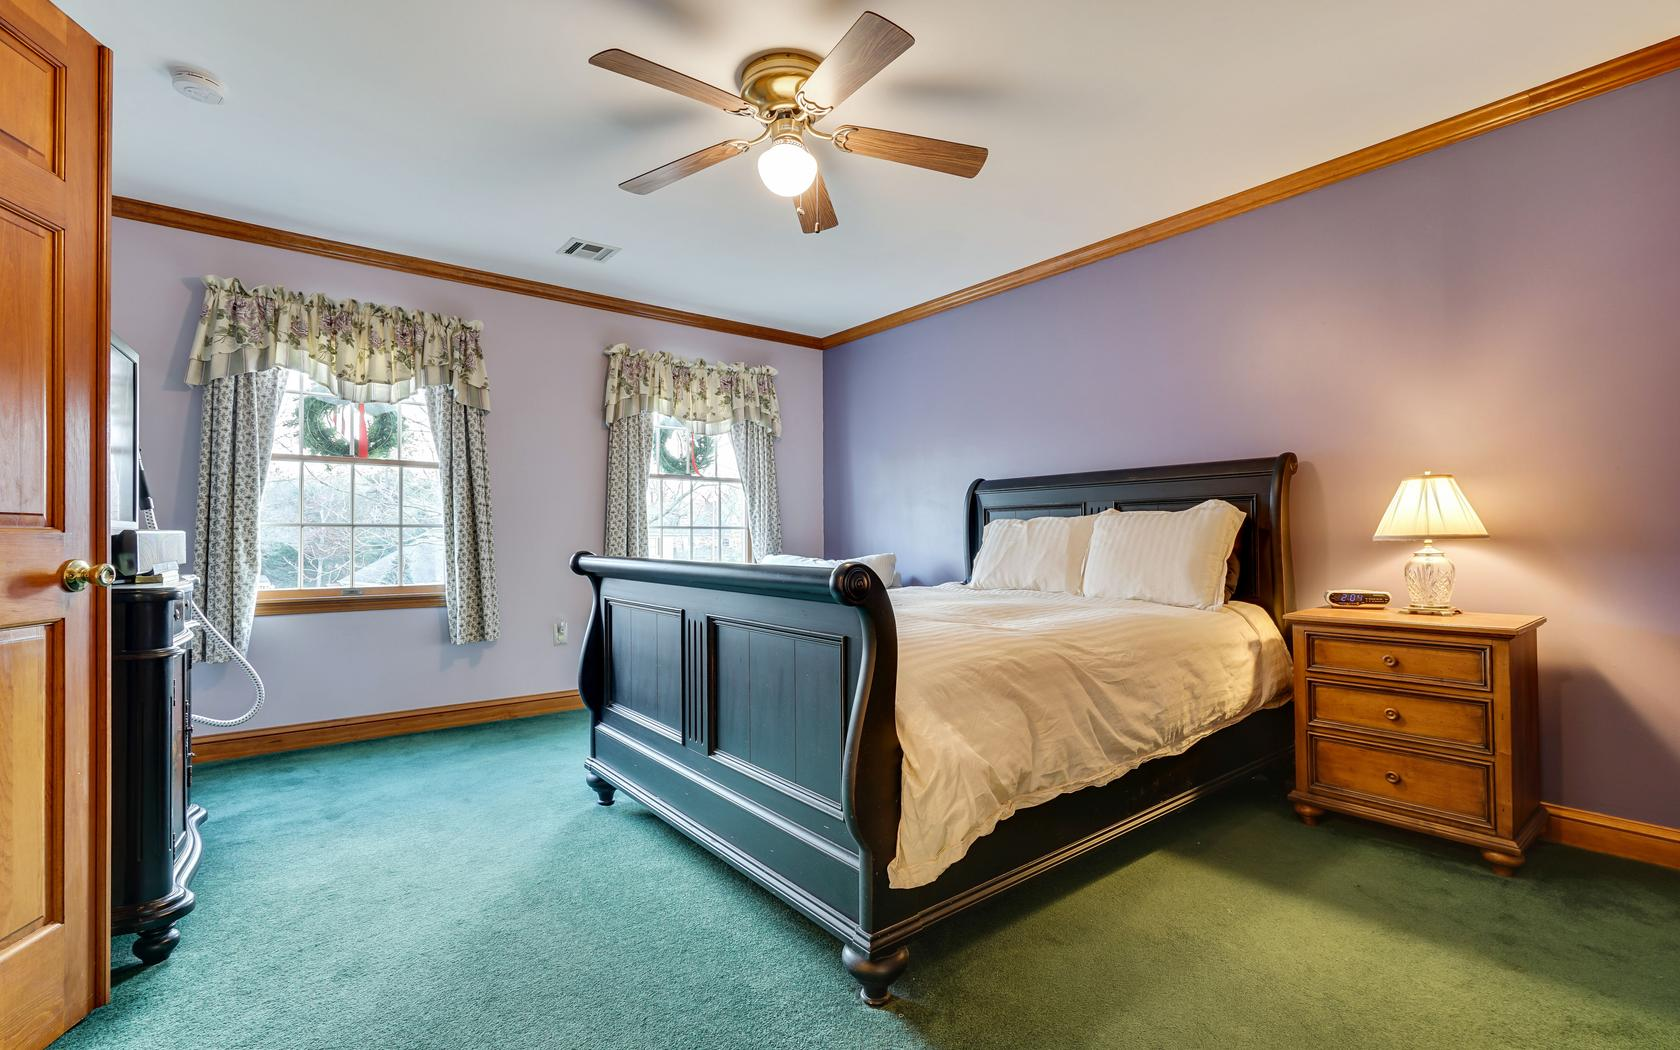 Additional photo for property listing at Orchard Crest Colonial 2310 Orchard Crest Blvd Wall, Nueva Jersey 08736 Estados Unidos